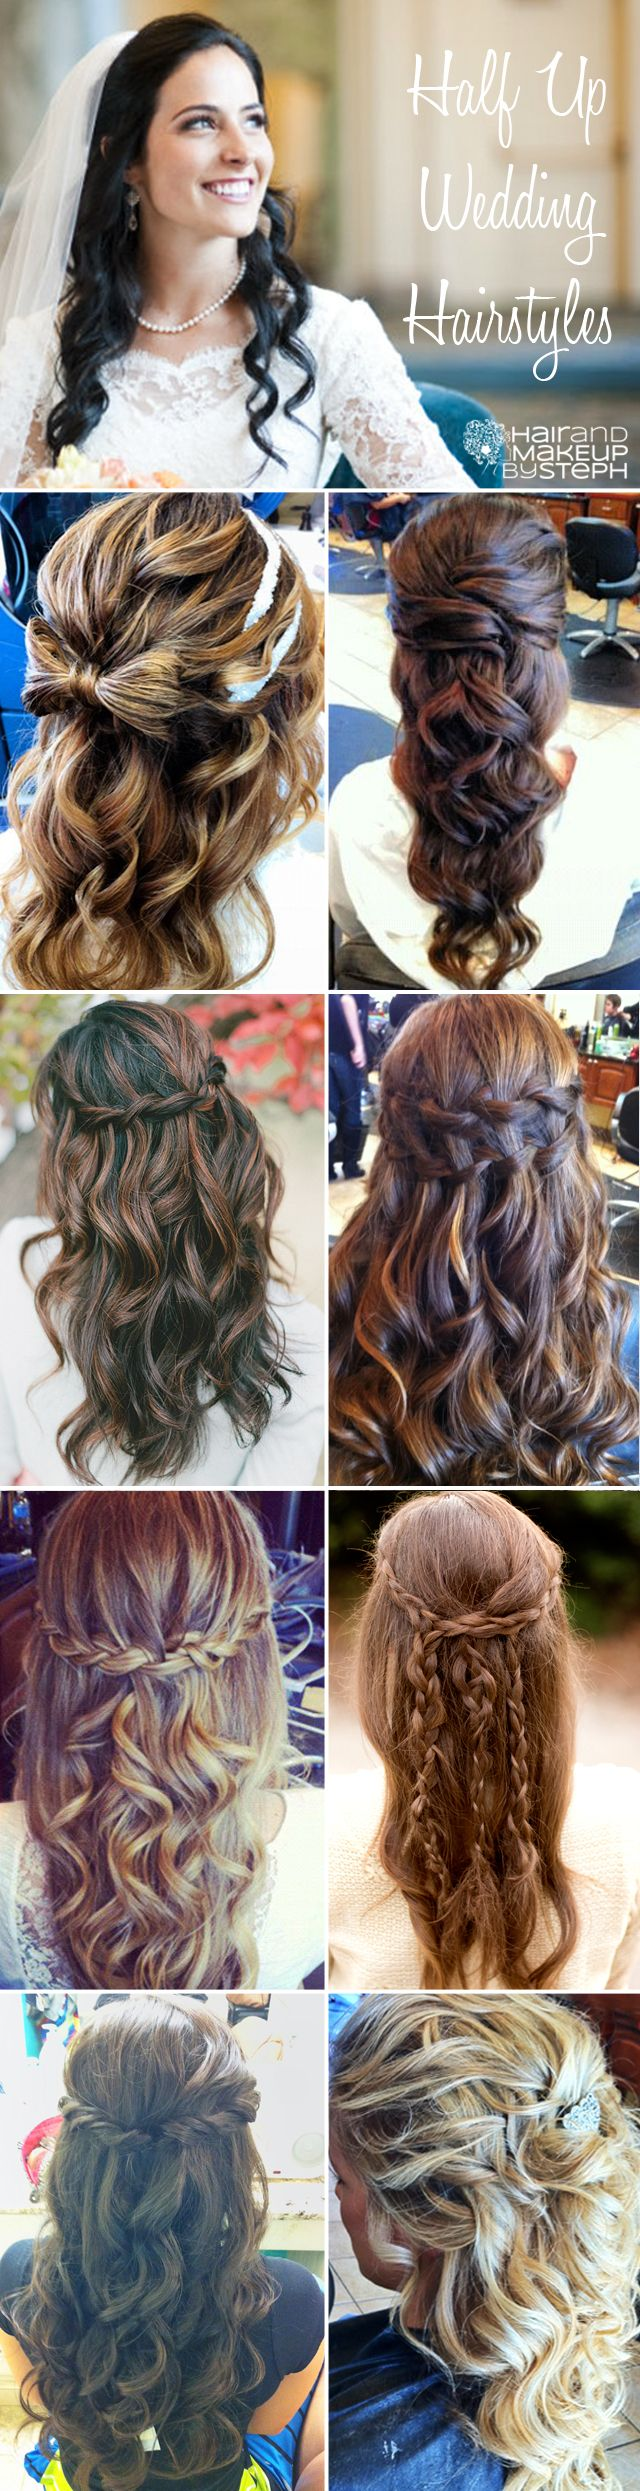 half up wedding hairstyles...not to mention the beautiful allie schroeder in the top picture....makes this pin all the sweeter!